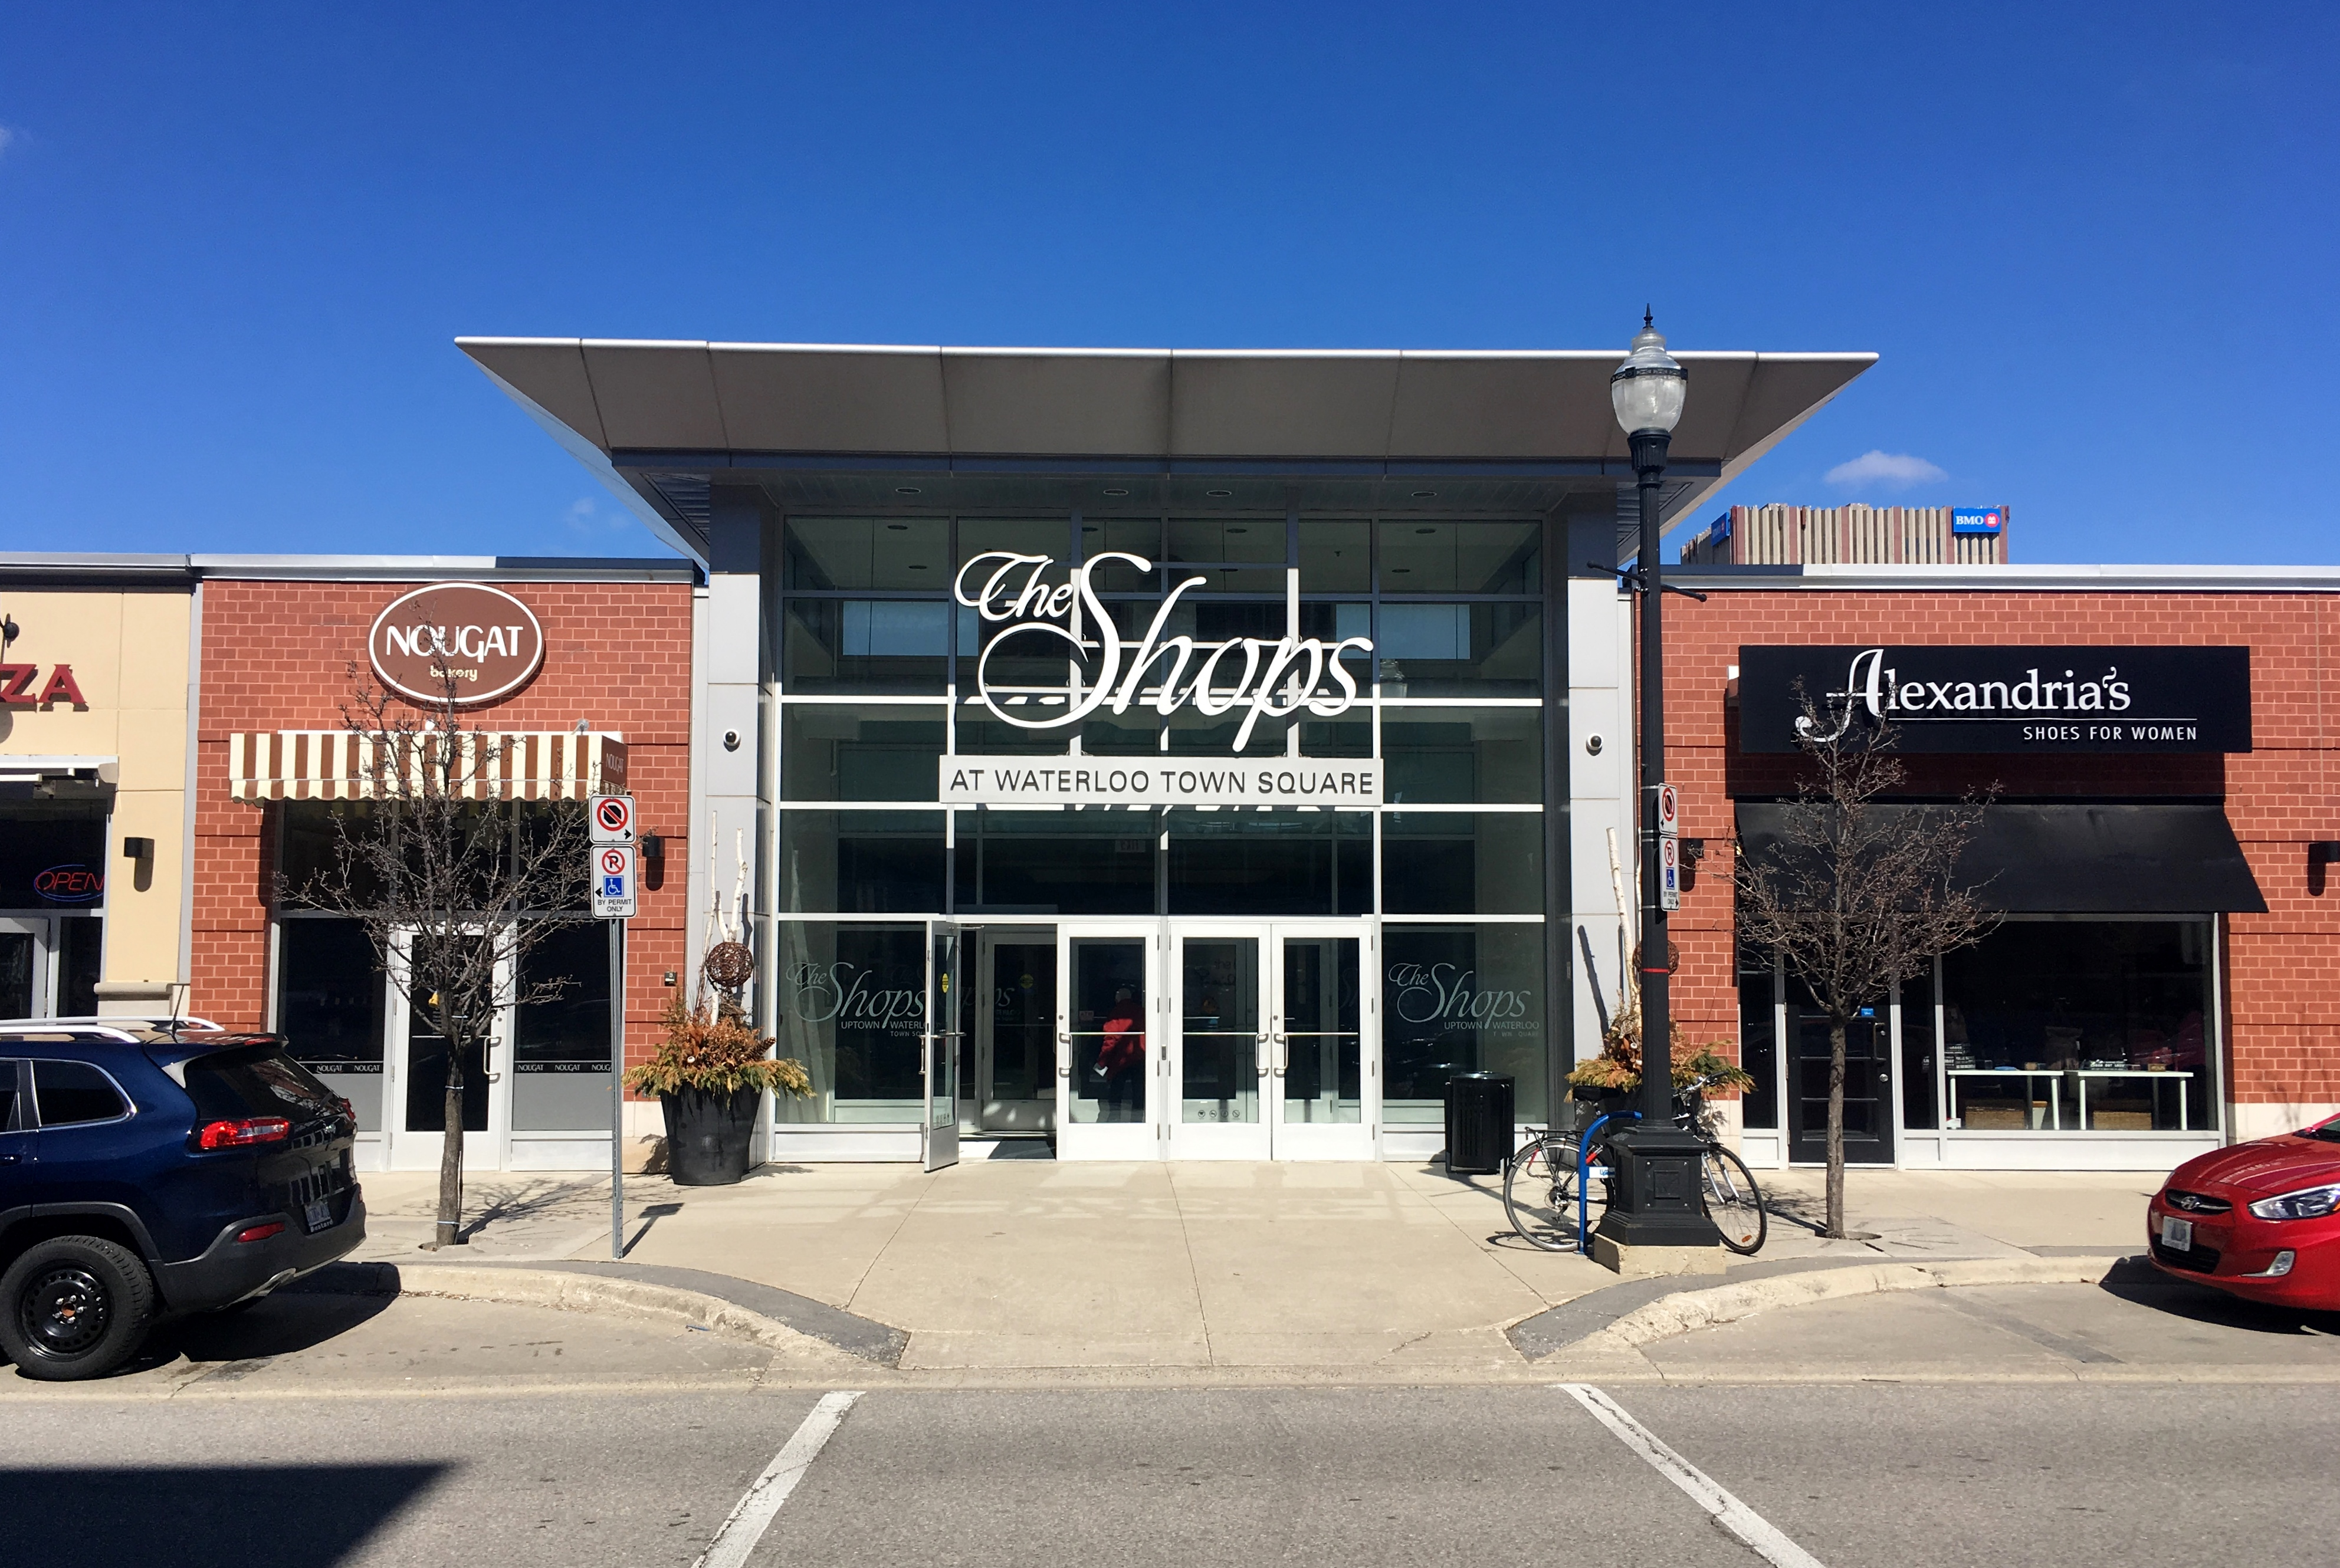 75-95 King Street South, Waterloo | For Lease